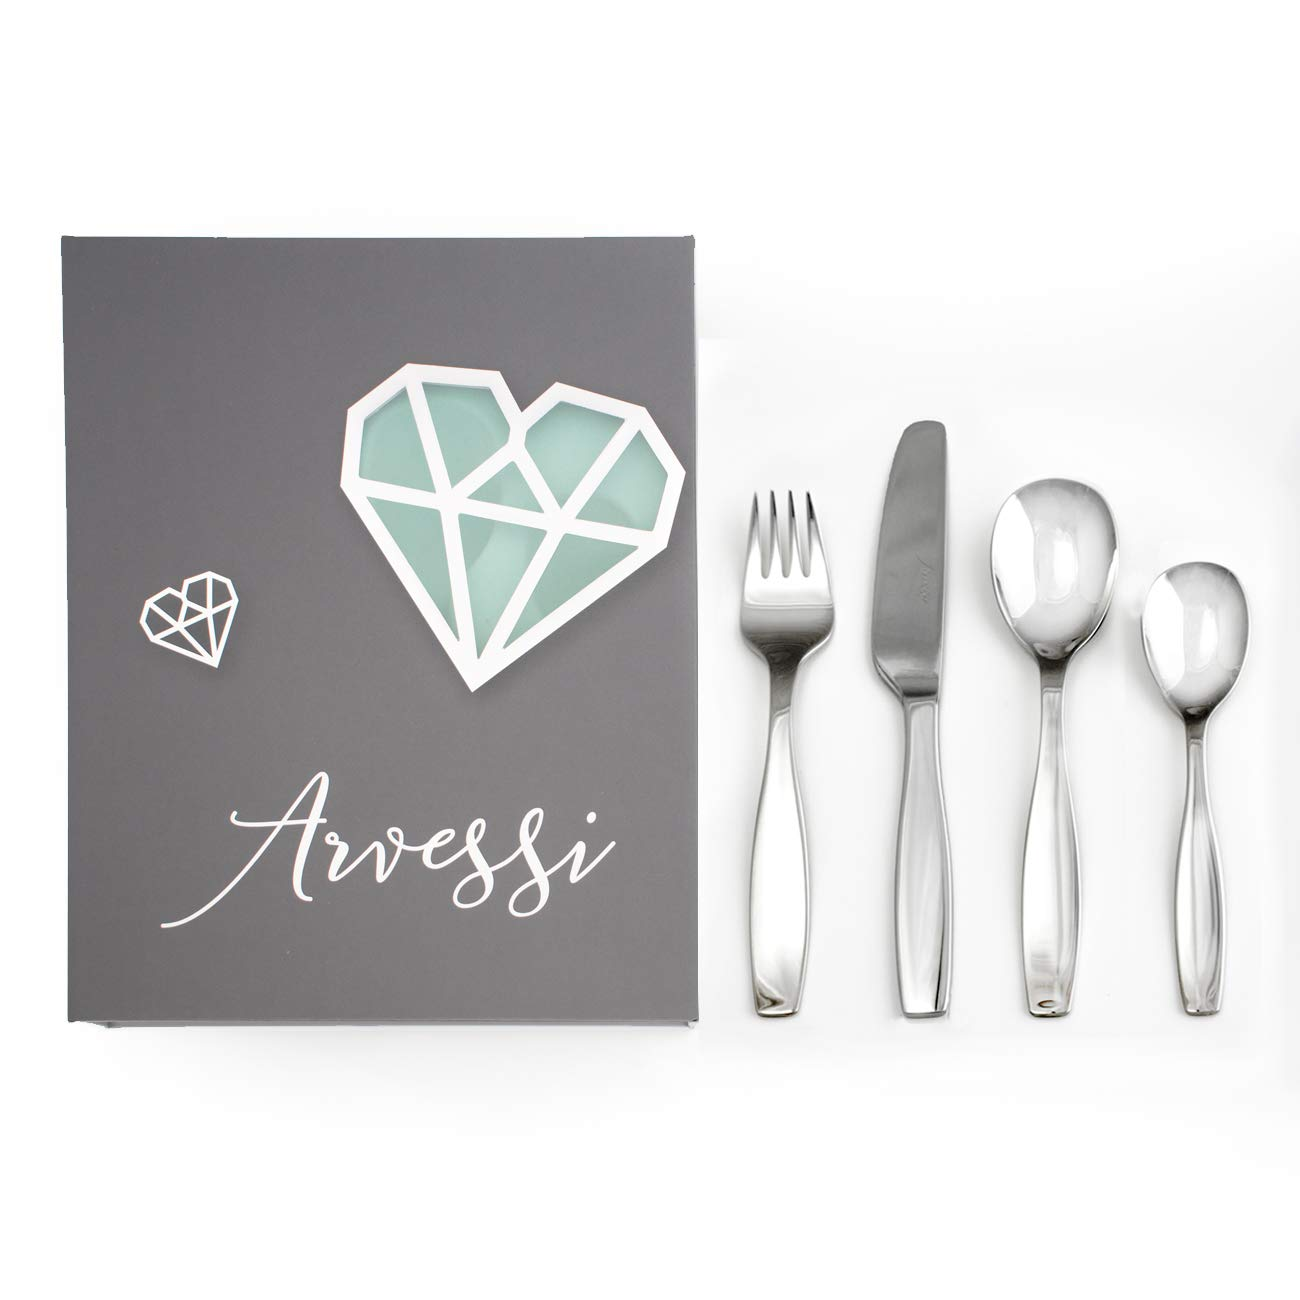 Premium Stainless Steel Kids Cutlery Set - Baby Keepsake Childrens Cutlery | 4 PCS Flatware Includes 2 Spoons Knife and Fork Set | Highest Quality Stainless Steel Cutlery Set Child Silverware by Arvessi